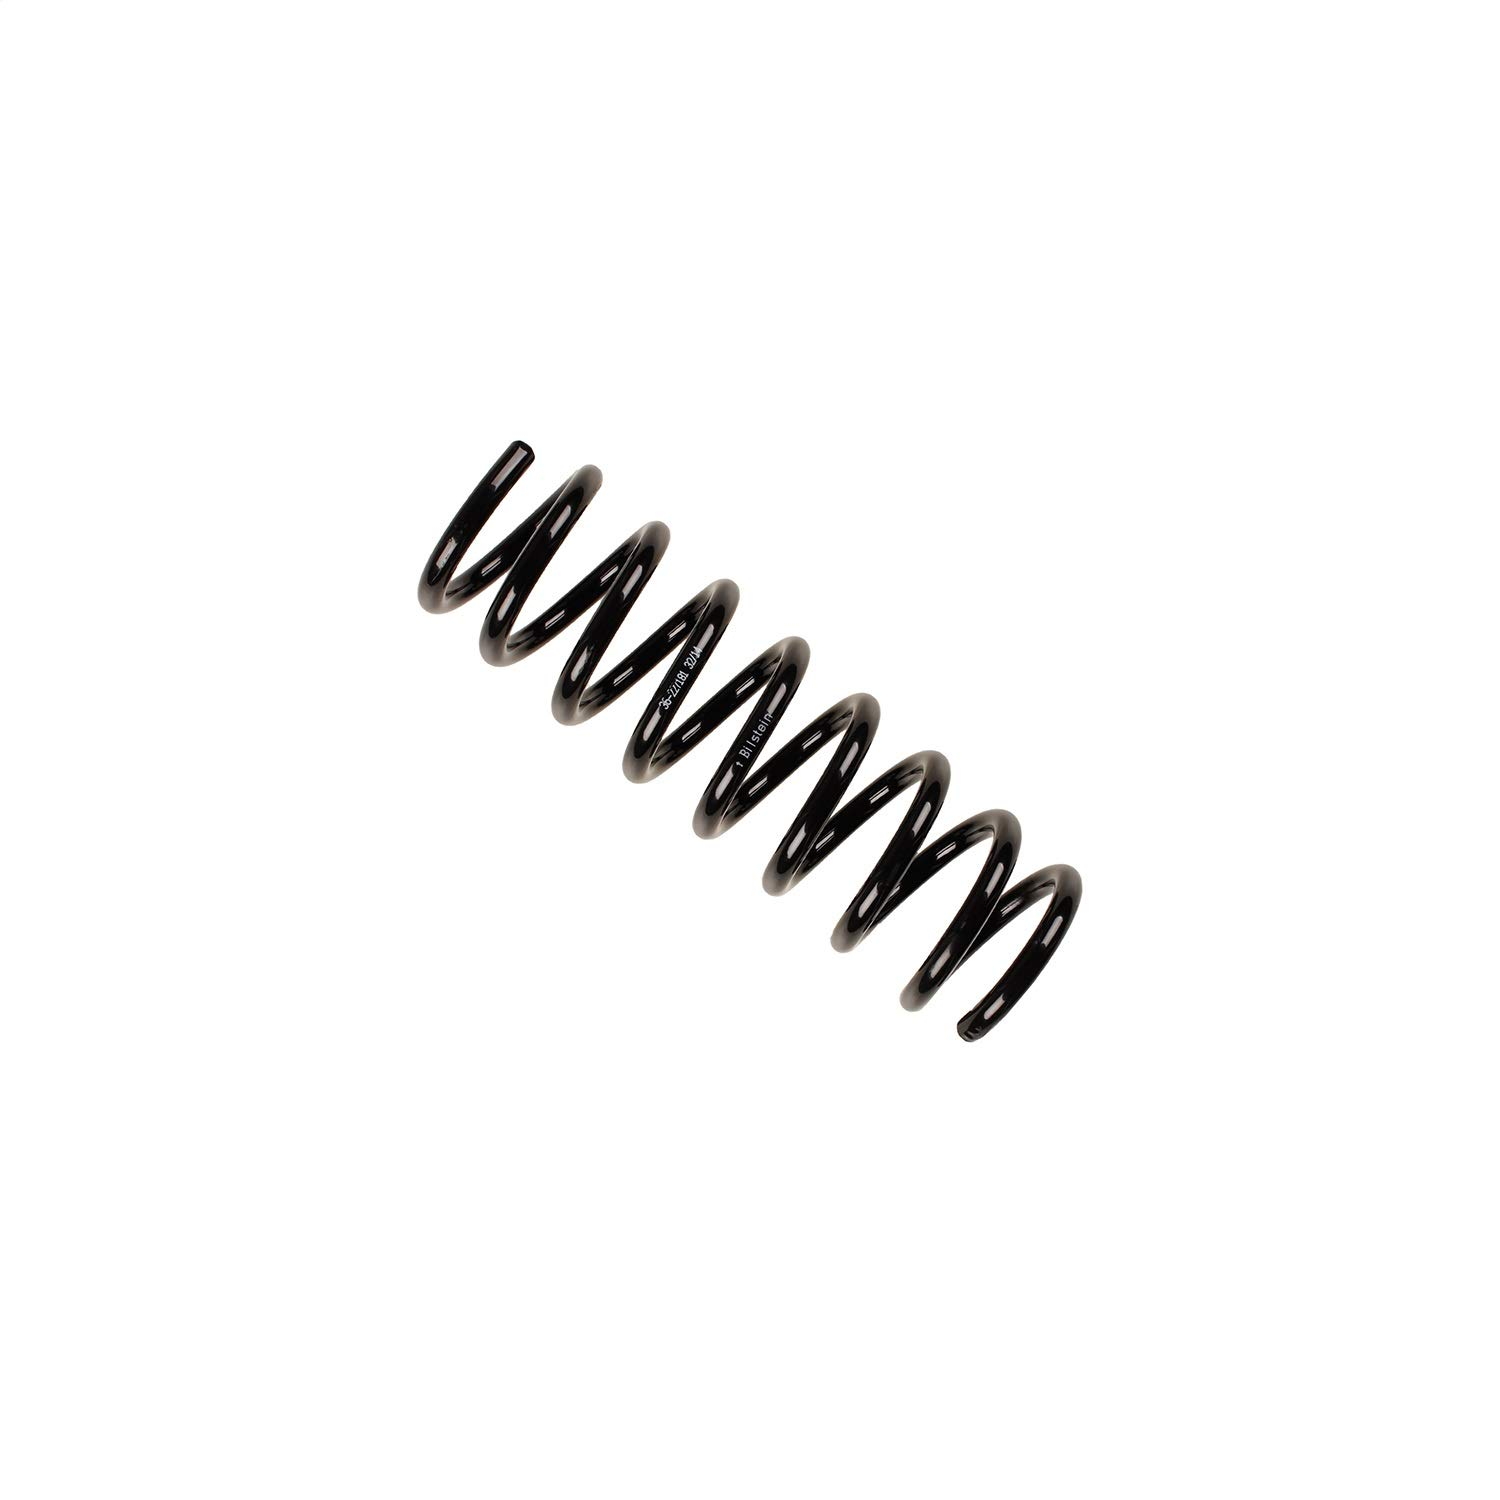 Bilstein 36-227181 B3 OE Replacement Coil Springs Front B3 OE Replacement Coil Springs